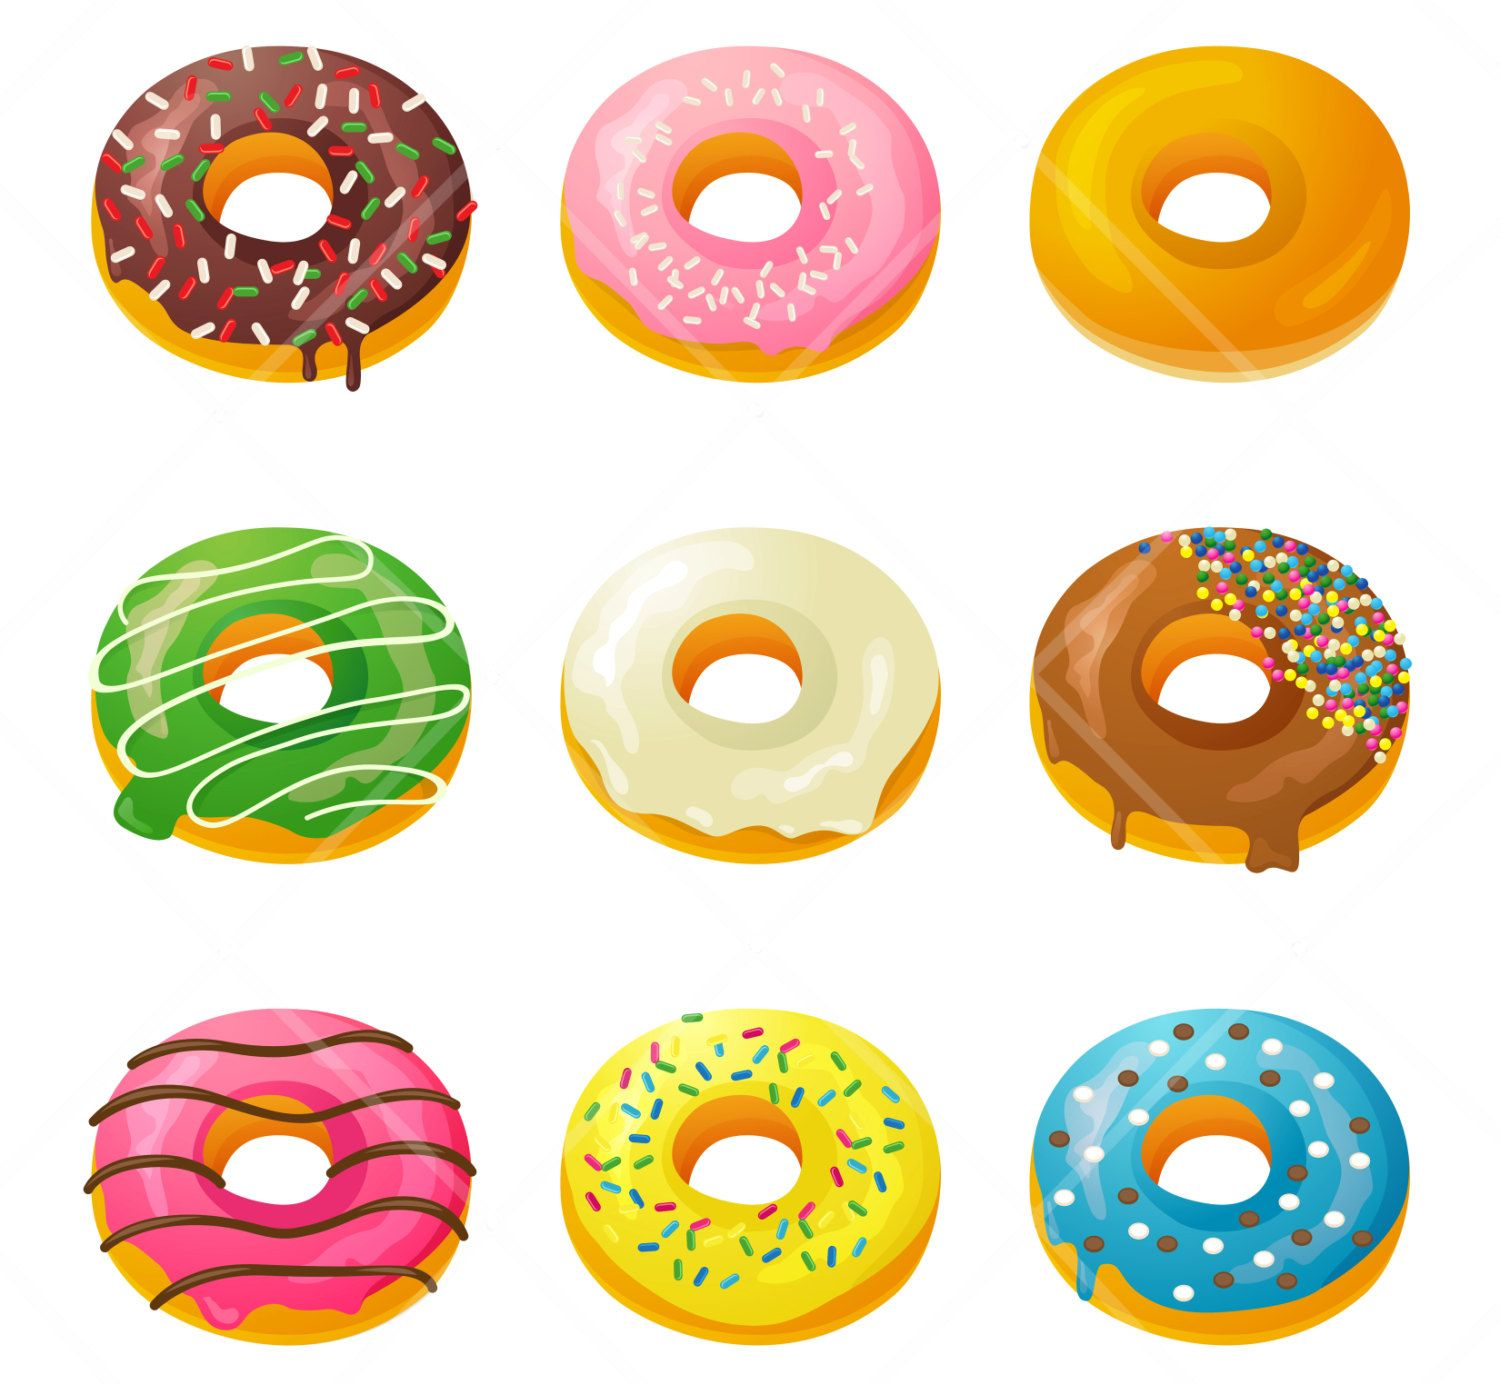 Donut wallpaper. Box of donuts clipart